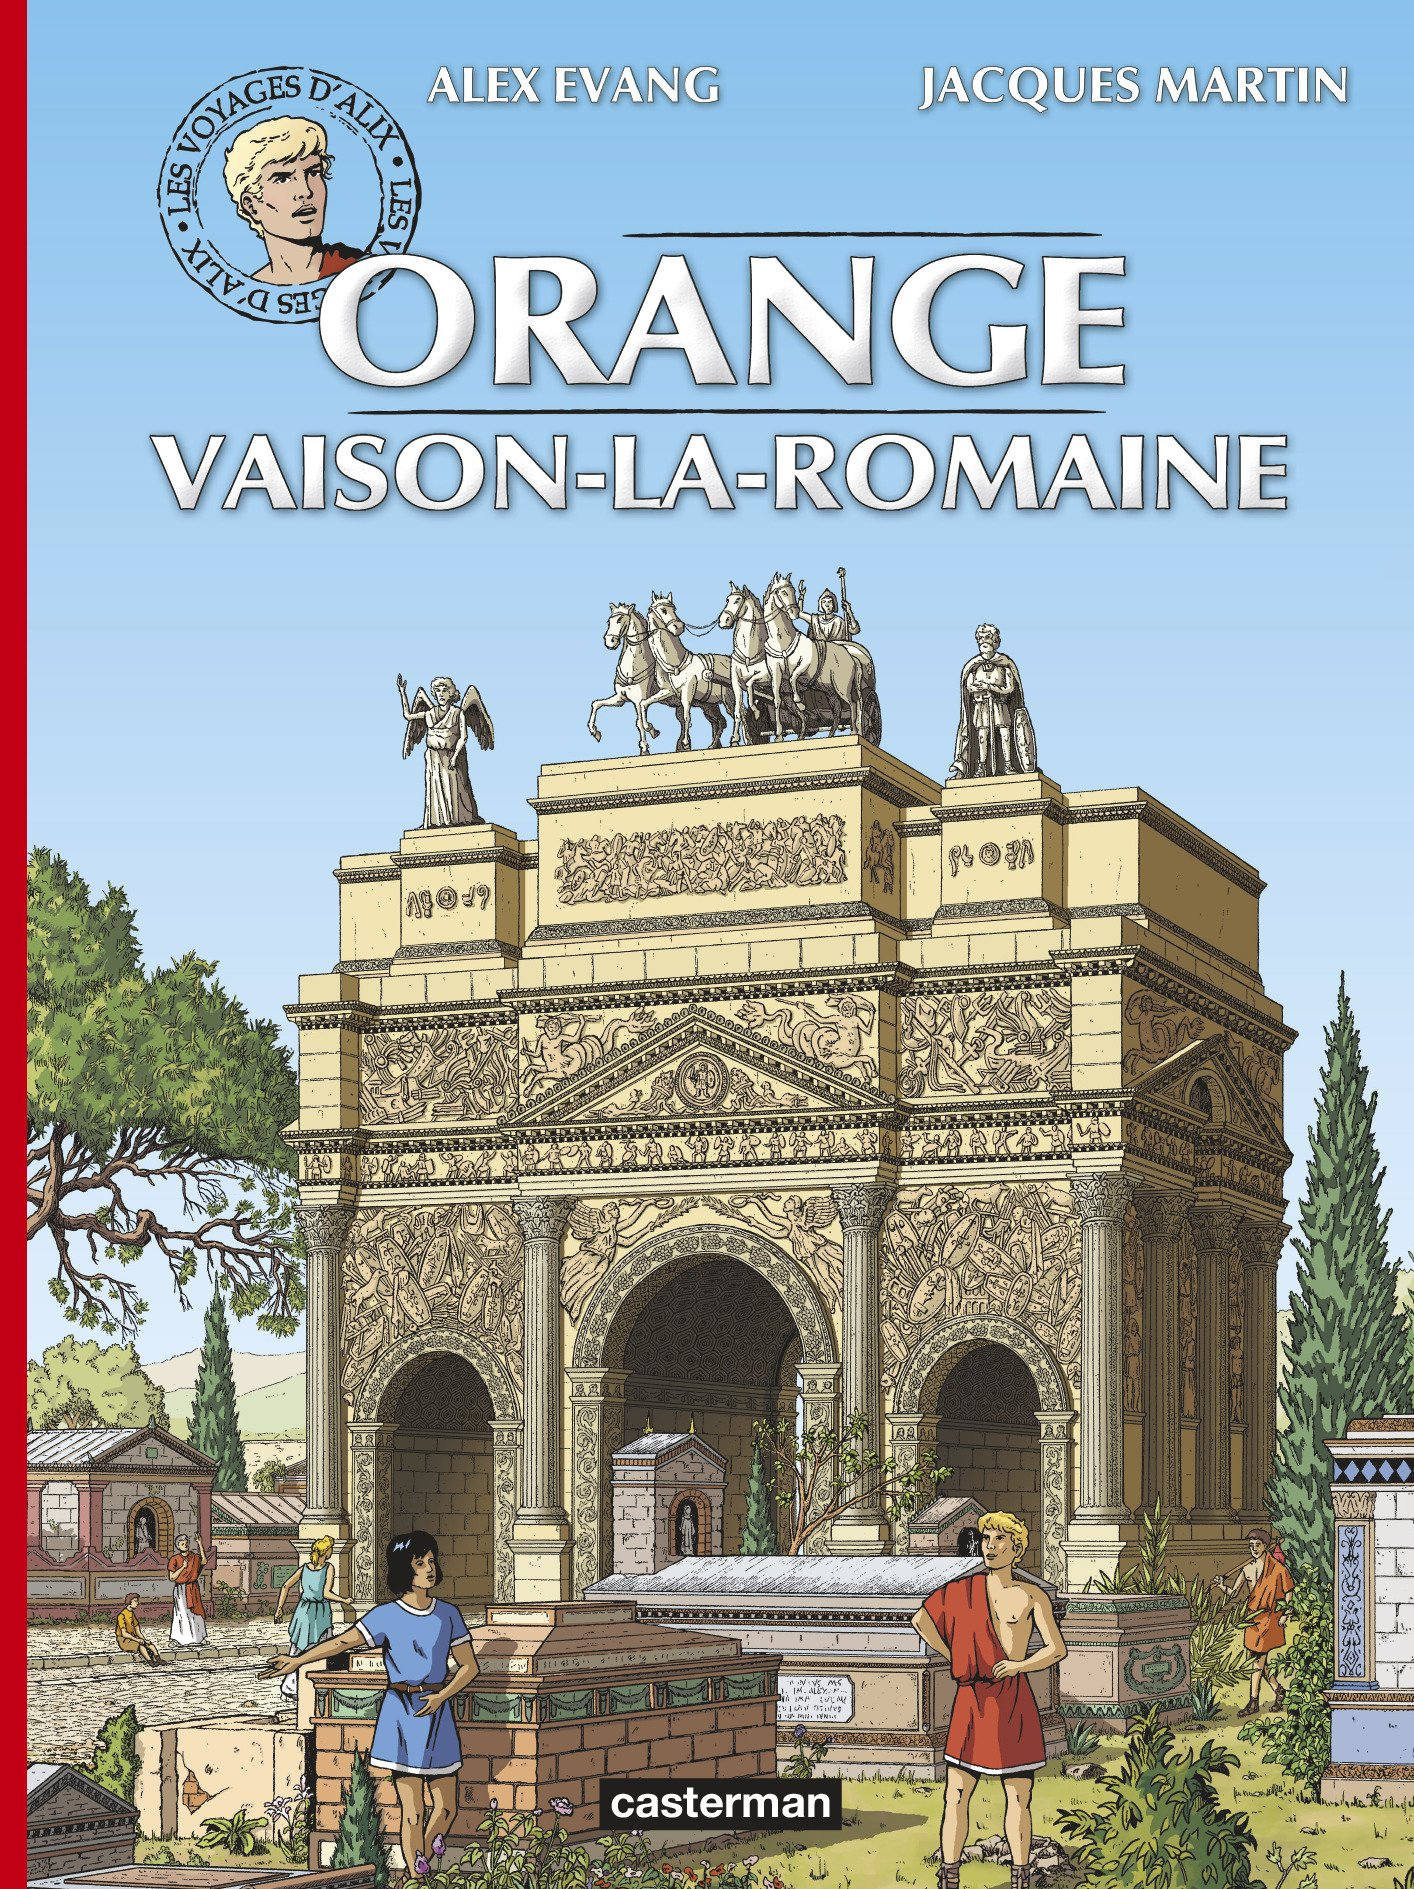 Les voyages d'Alix : Orange et Vaison-la-Romaine Album – 6 mai 2015 Jacques Martin Alex Evang CASTERMAN 2203095601